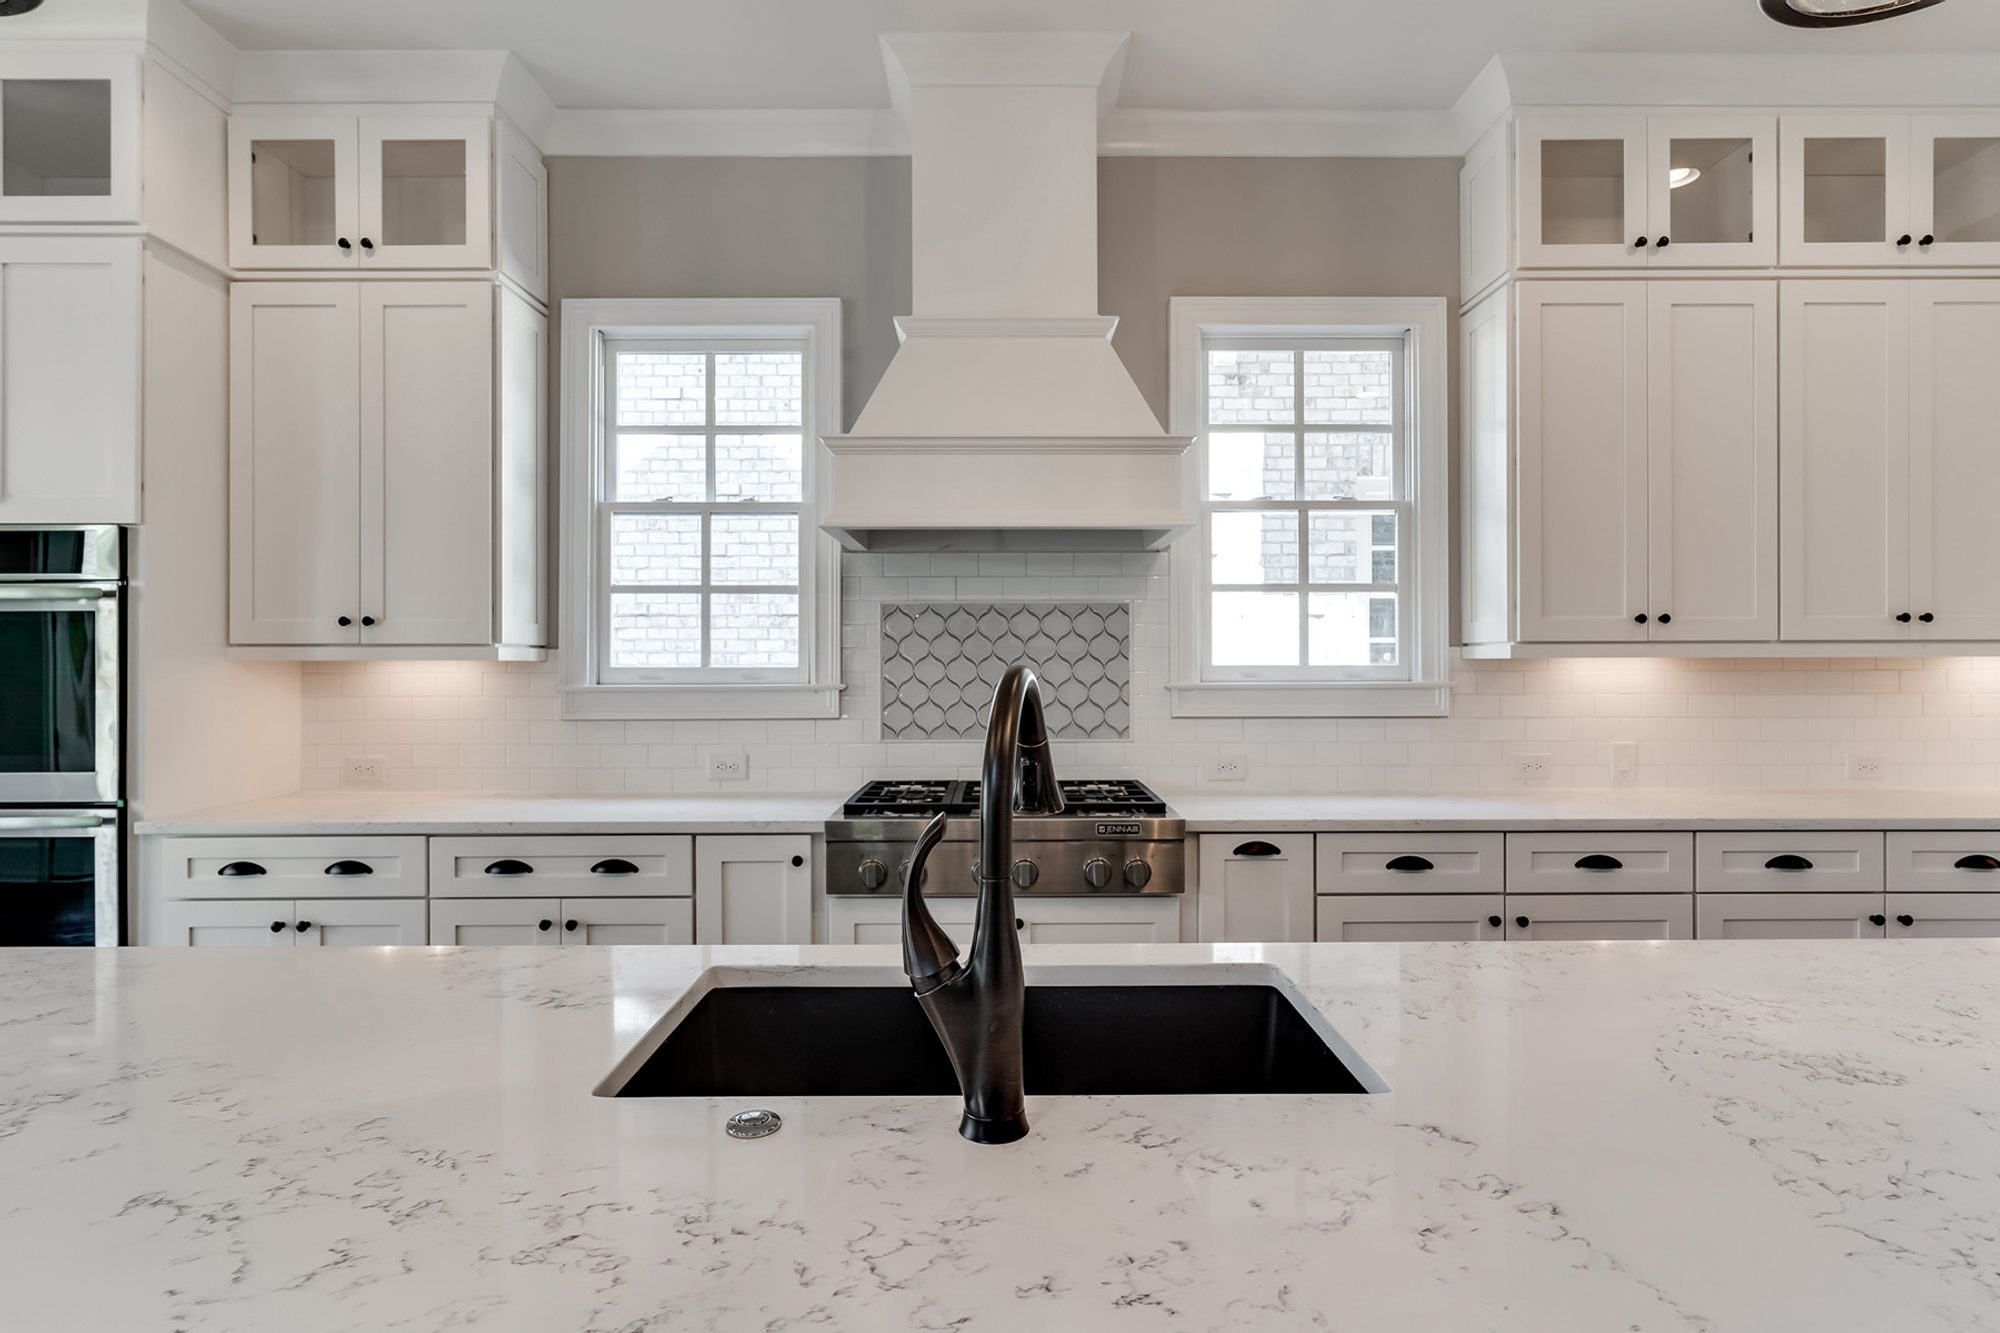 All white kitchen design featuring white shaker style modern cabinets, white subway tile backsplash and black hardware.